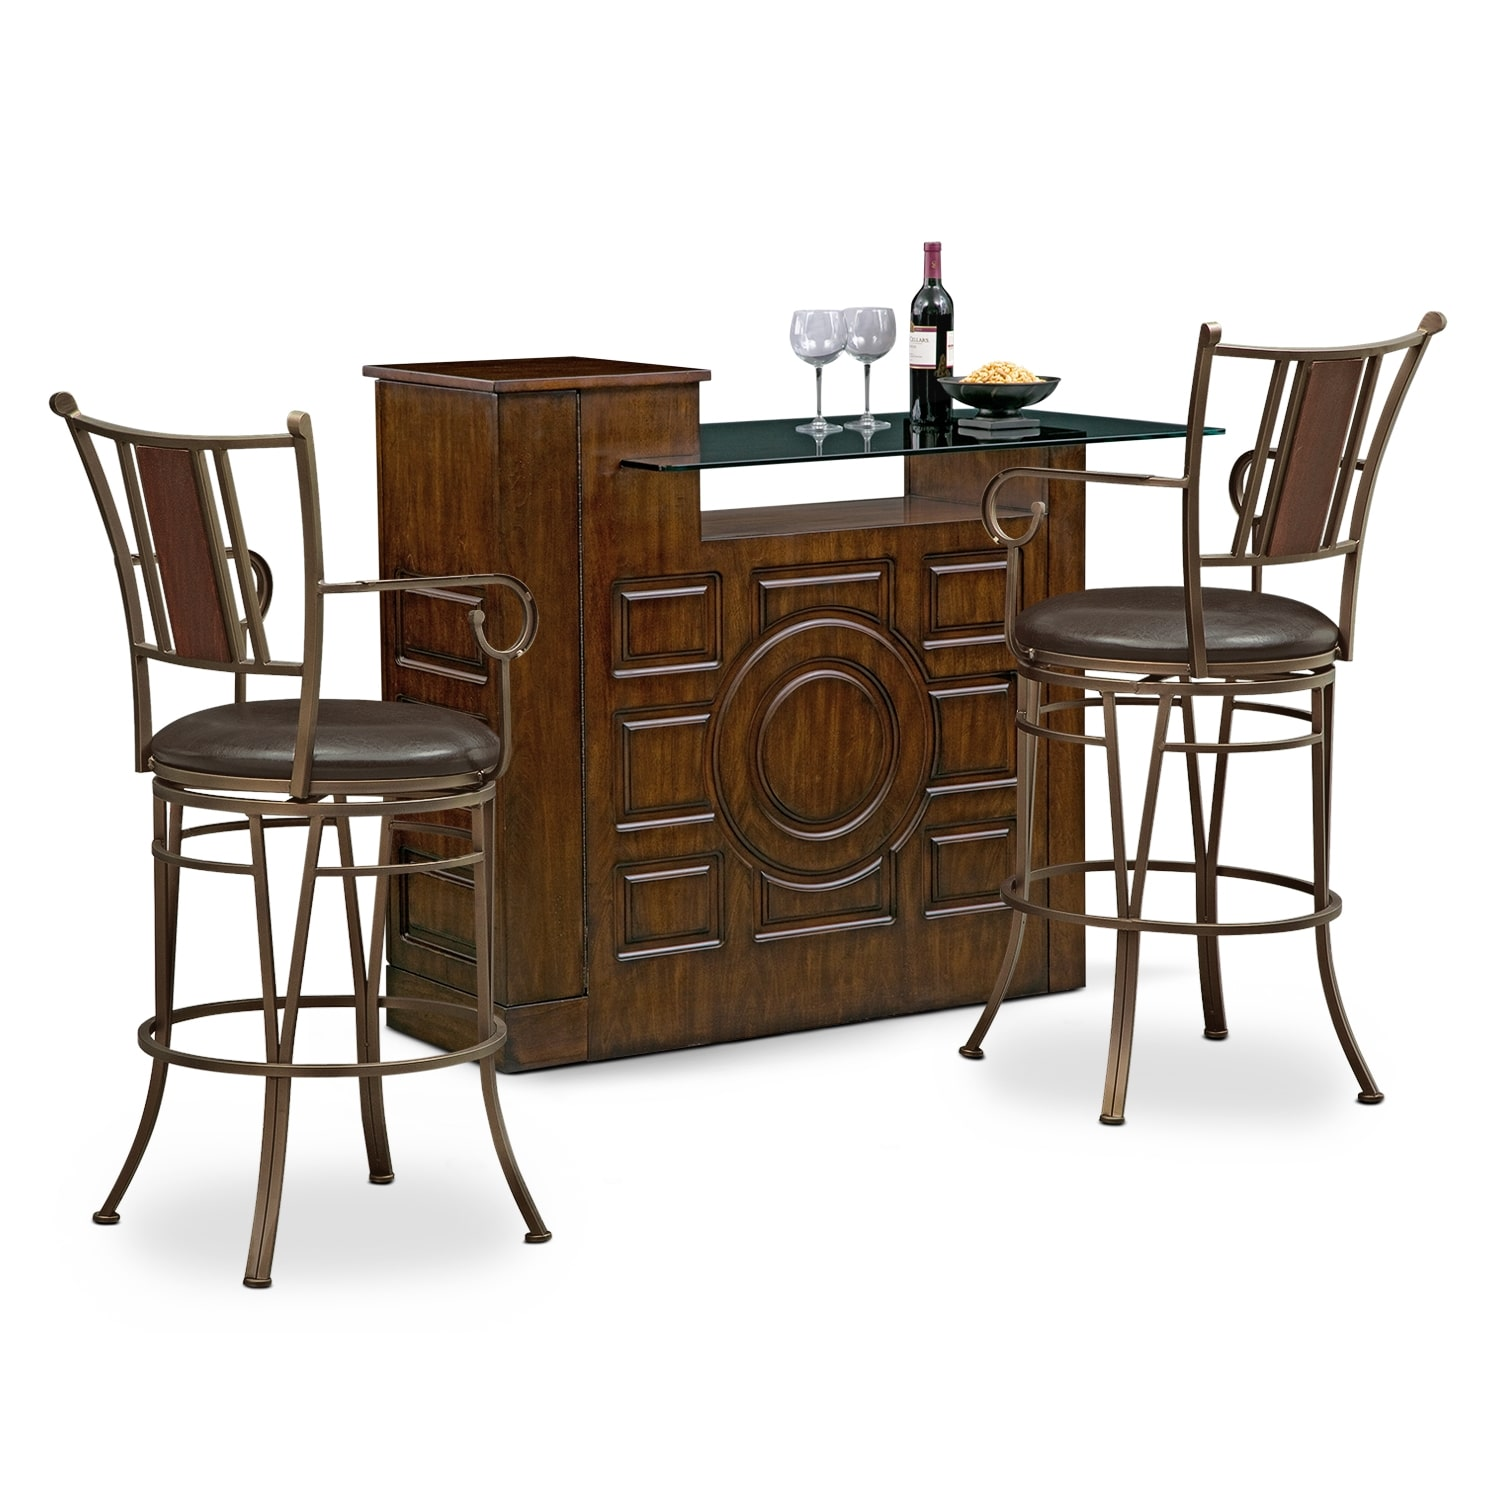 Accent and Occasional Furniture - Origins Camden 3 Pc. Bar Set